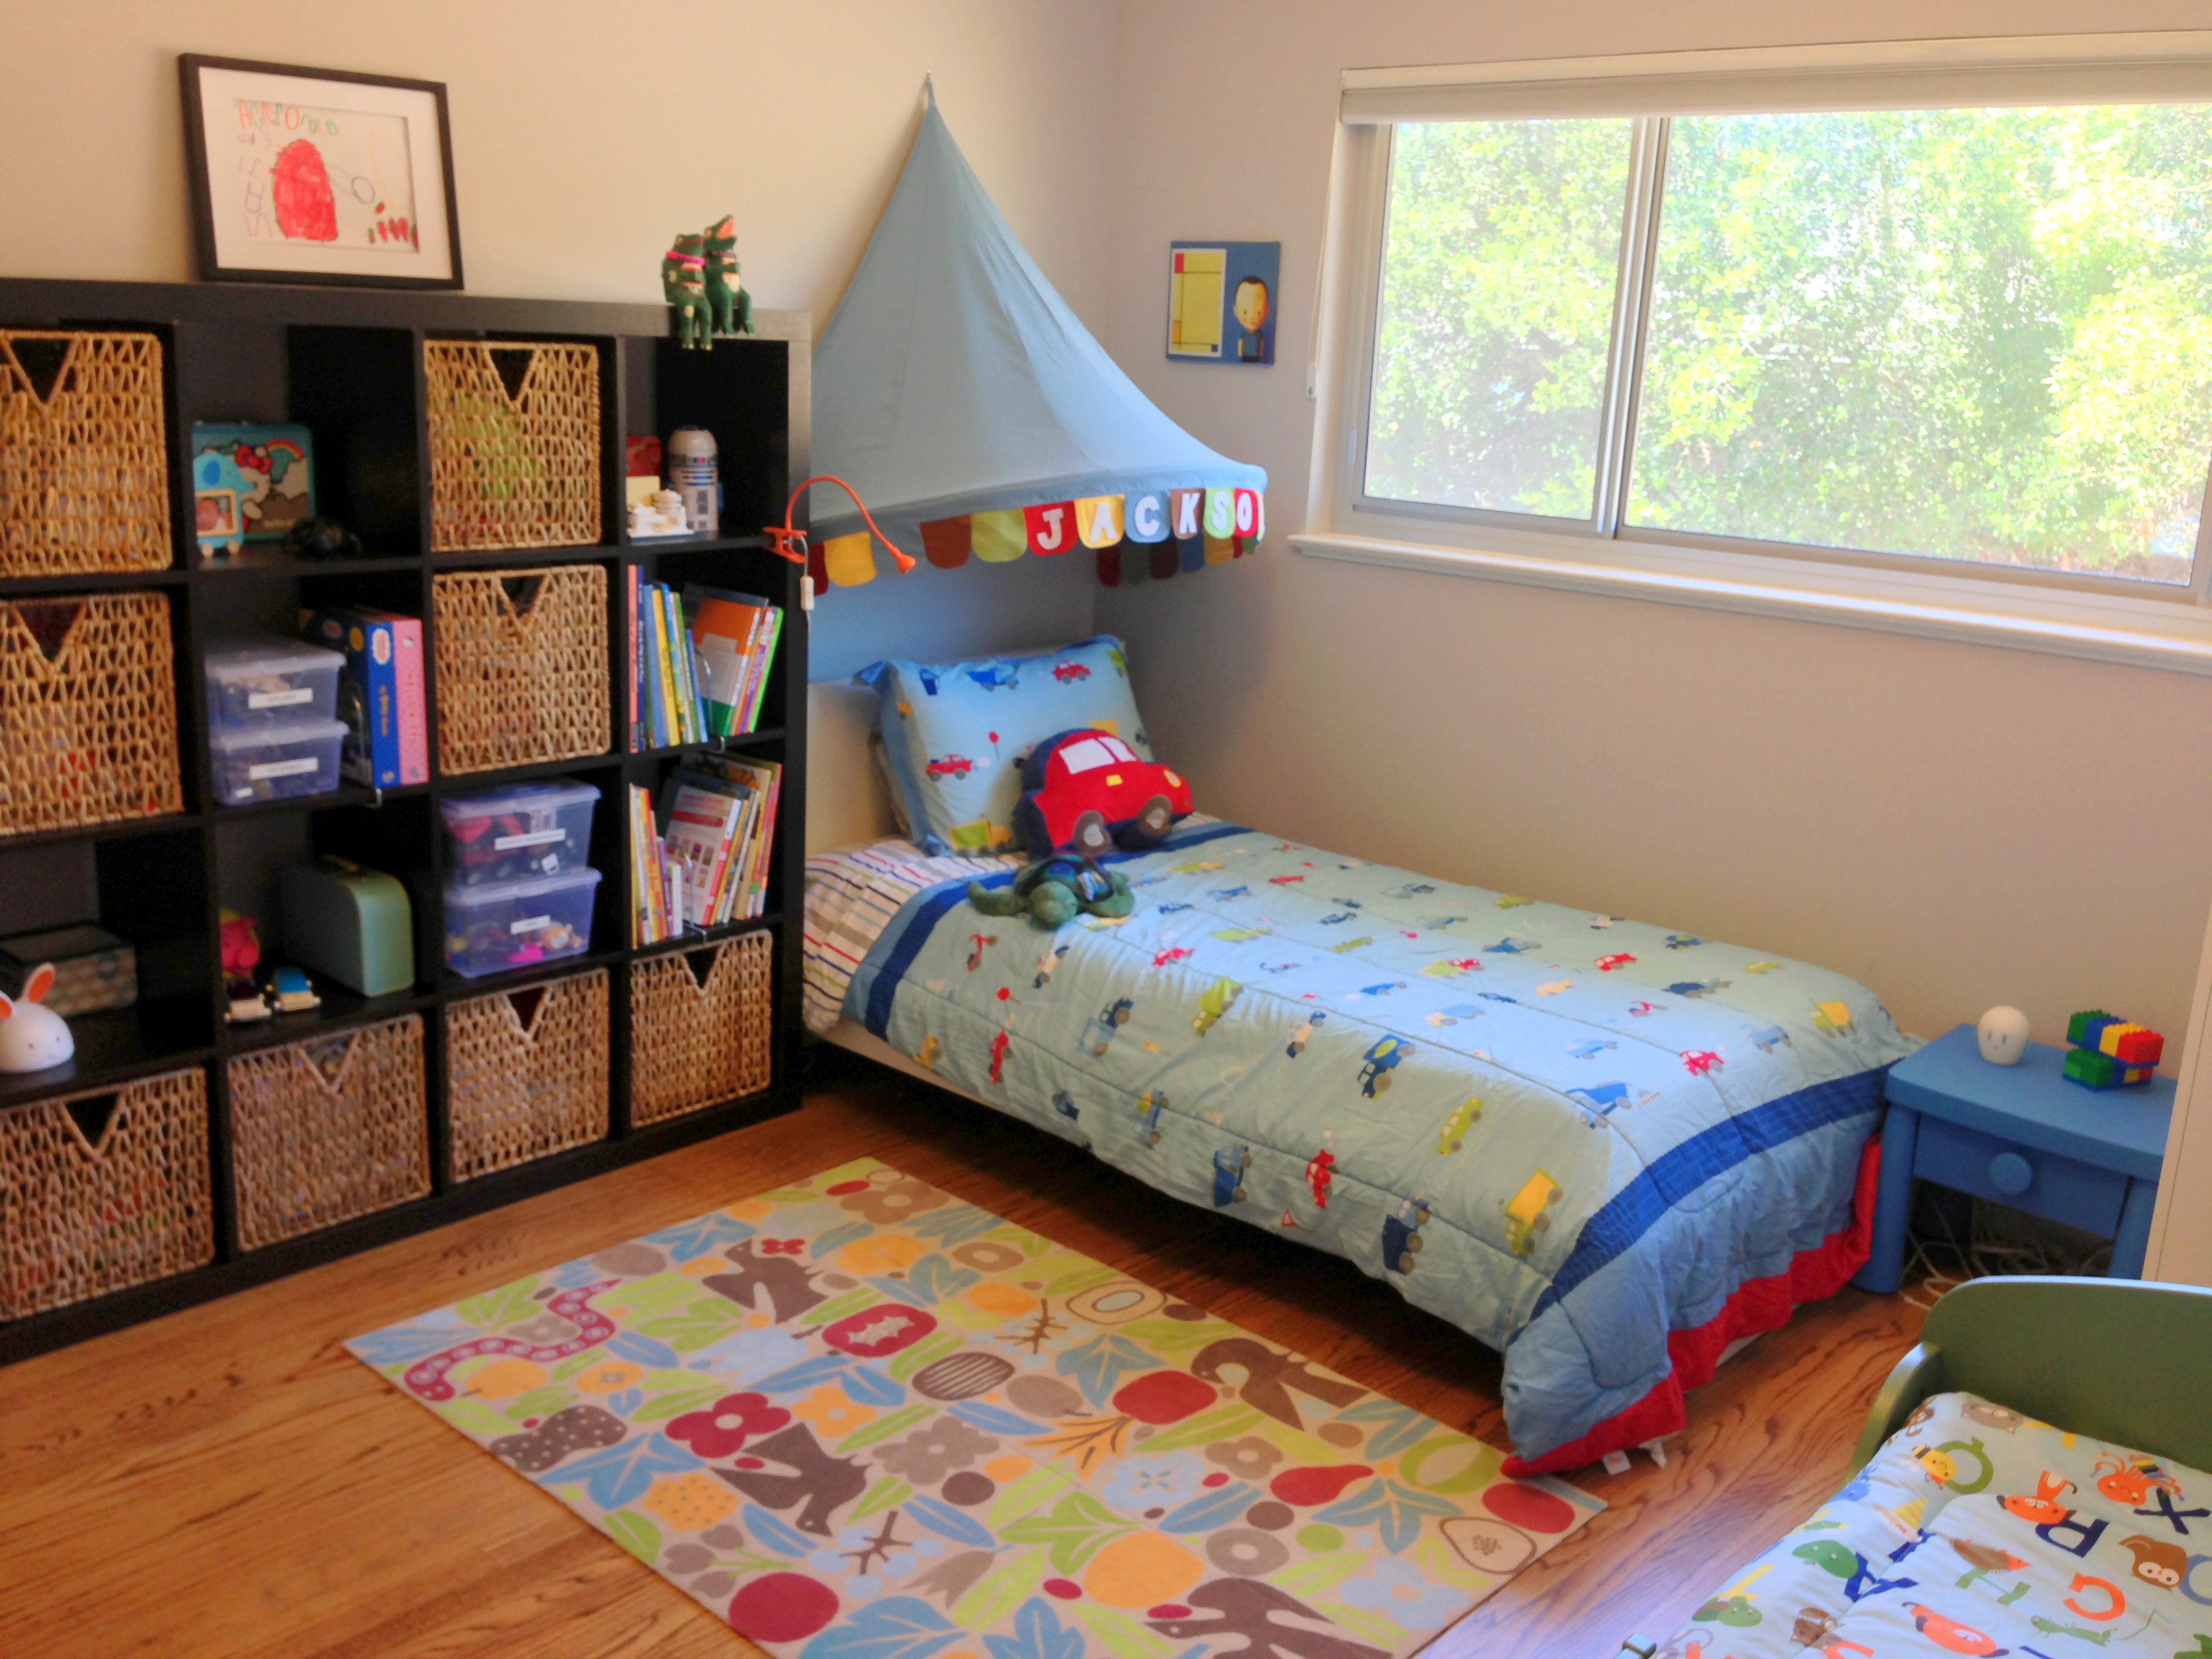 Boy meets girl siblings share a bedroom poche de maman for Bedroom ideas for siblings sharing